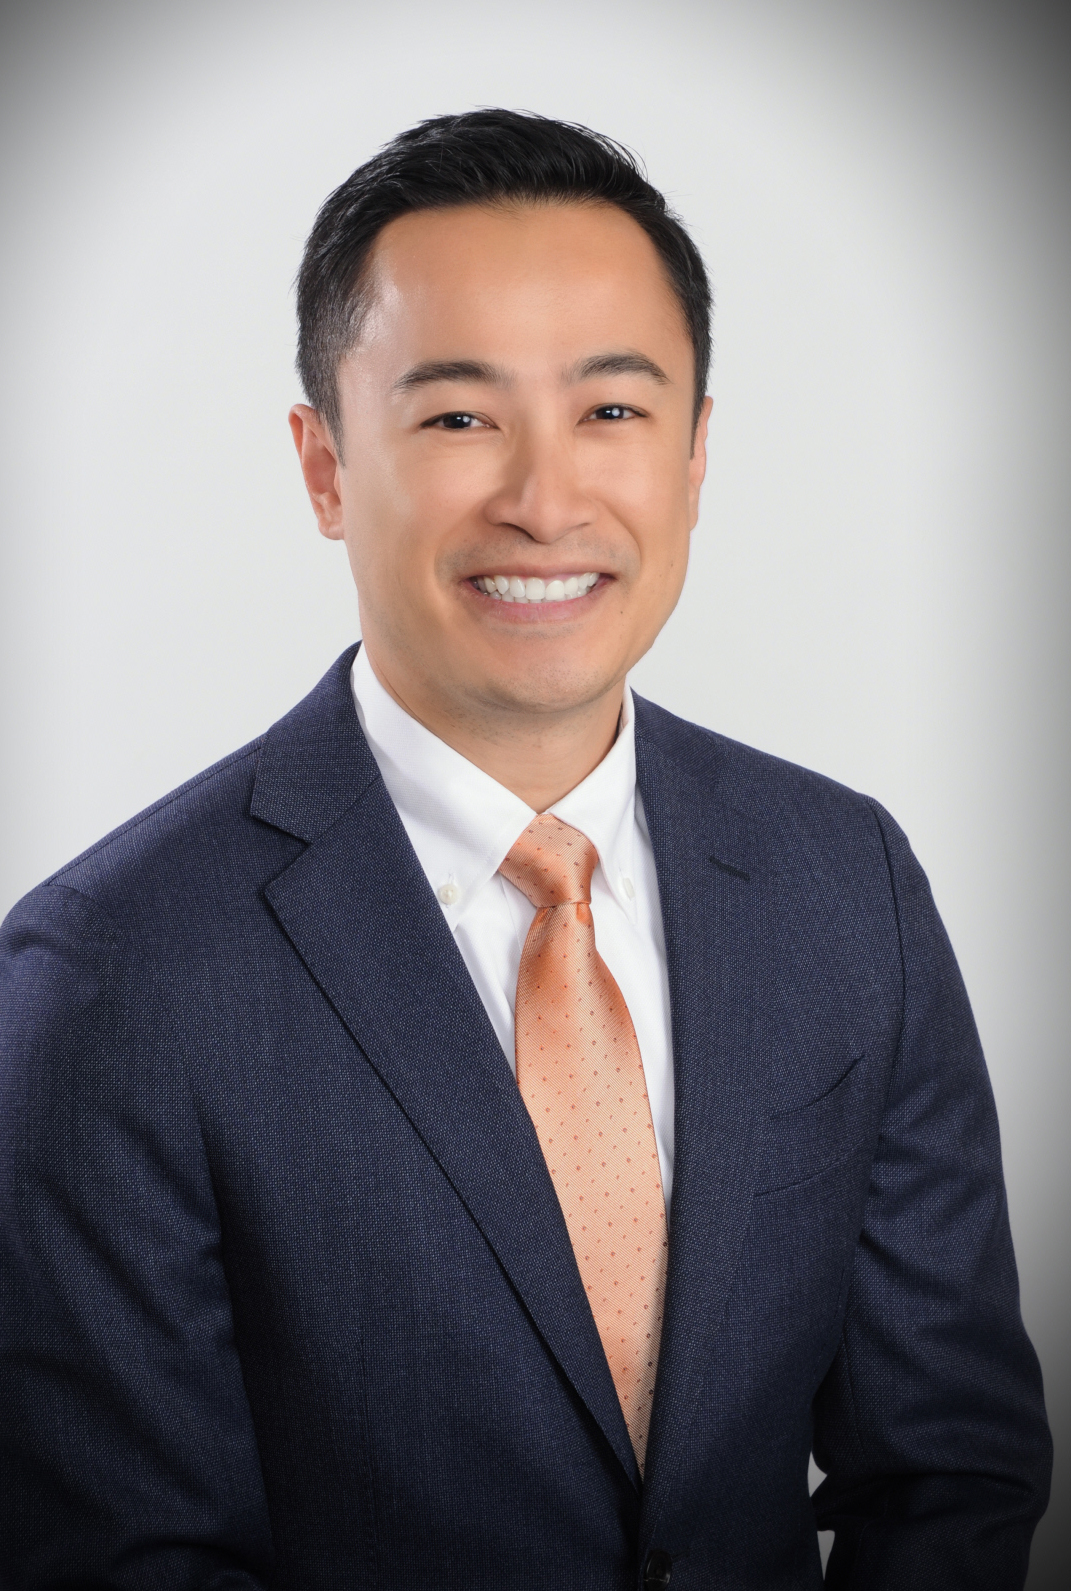 Toan Nguyen, CIA, ABCP